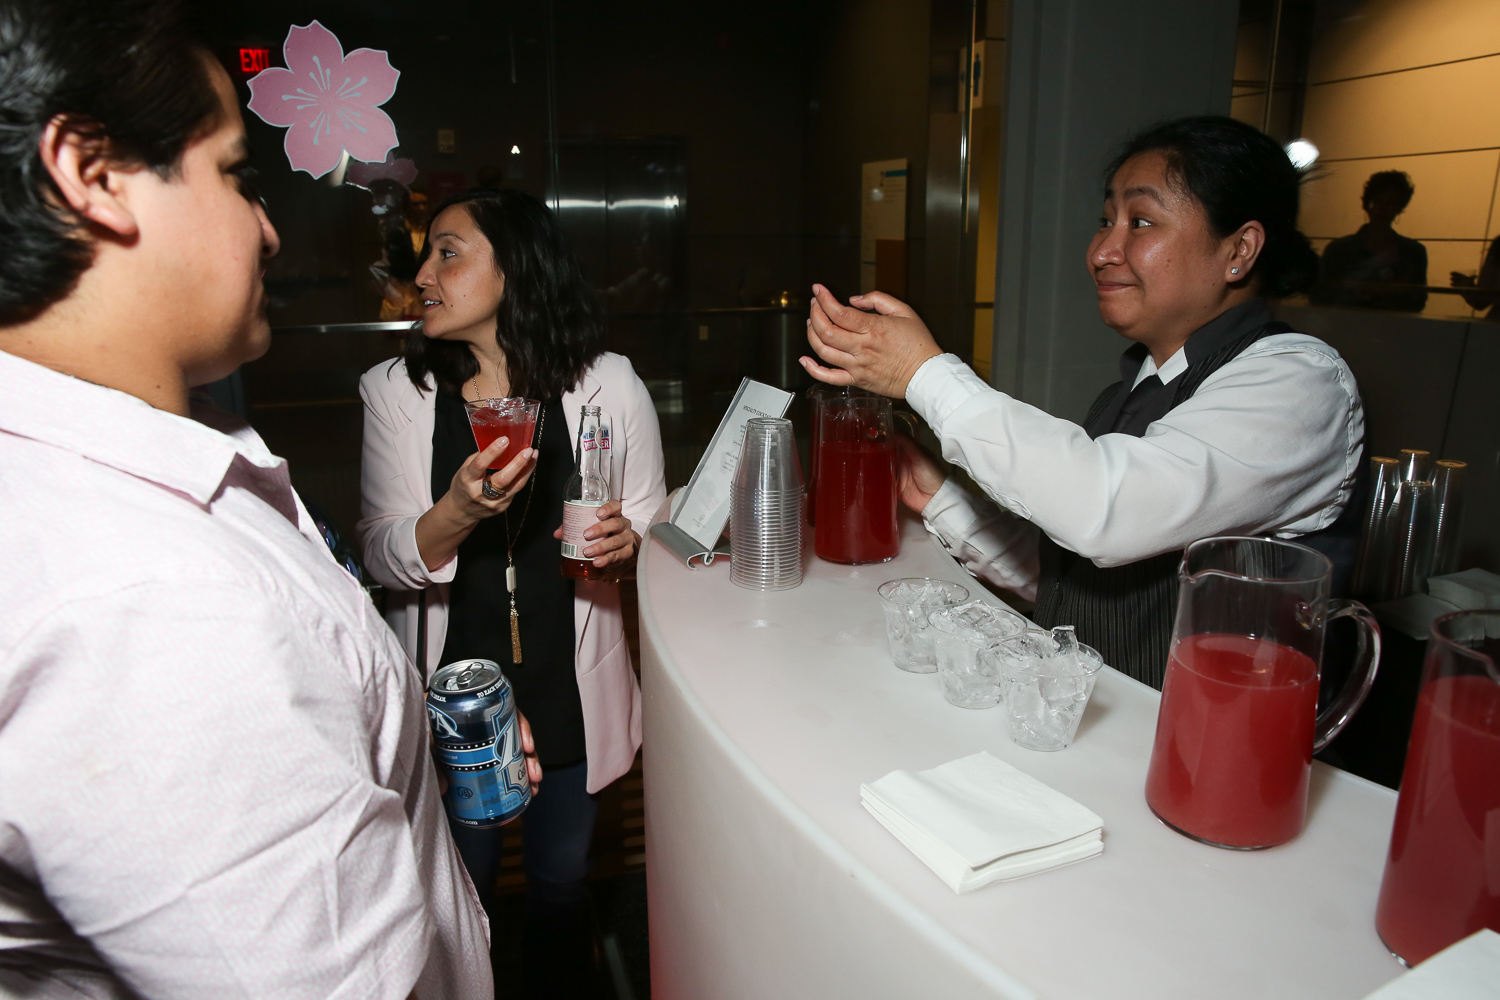 Hundreds of Washingtonians flocked to the Newseum on April 13 for their annual celebration of the cherry blossoms. 'In Bloom' featured small bites and drinks that could be enjoyed while strolling through the Newseum's substantial exhibits, including their new Photo of the Year feature, which opened last week. The evening included a bar inside the elevators, traditional Japanese performances and entertainment throughout the Newseum. (Amanda Andrade-Rhoades/DC Refined)